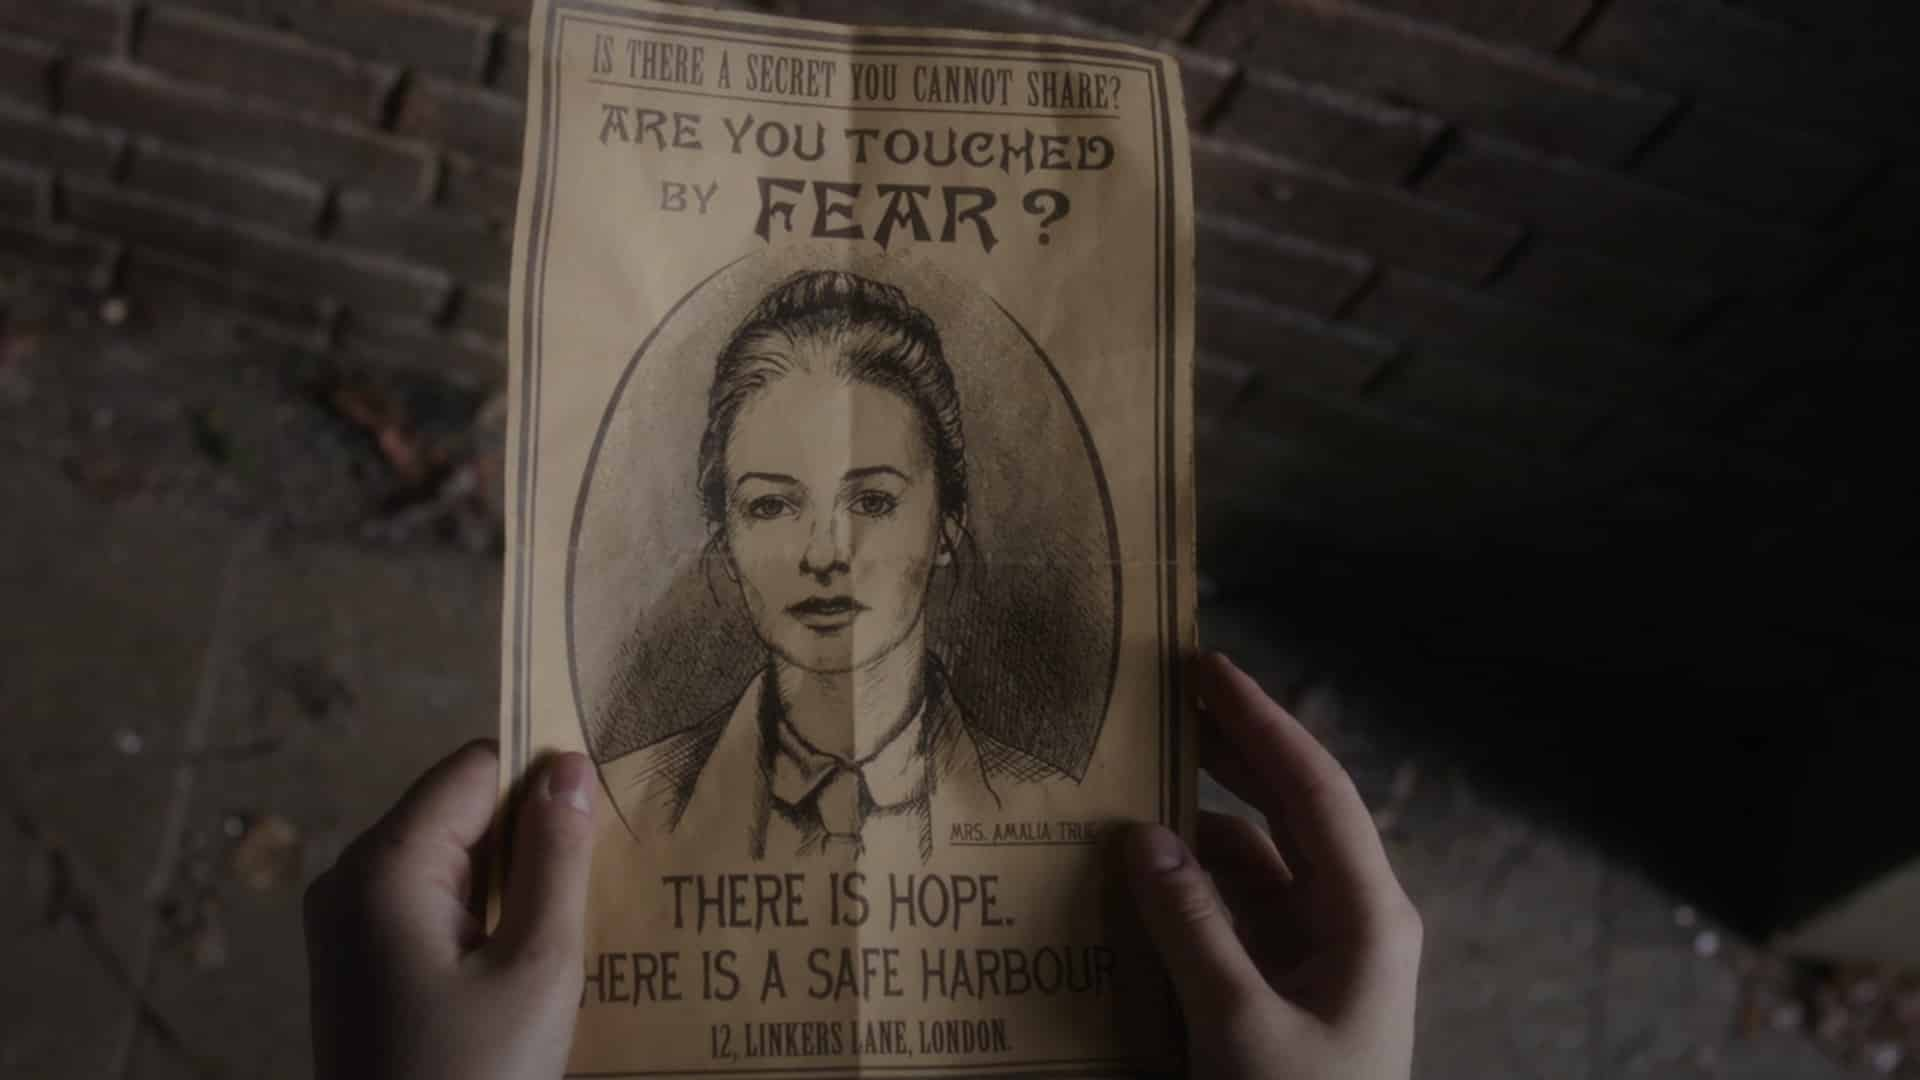 A poster advertising Amalia's help